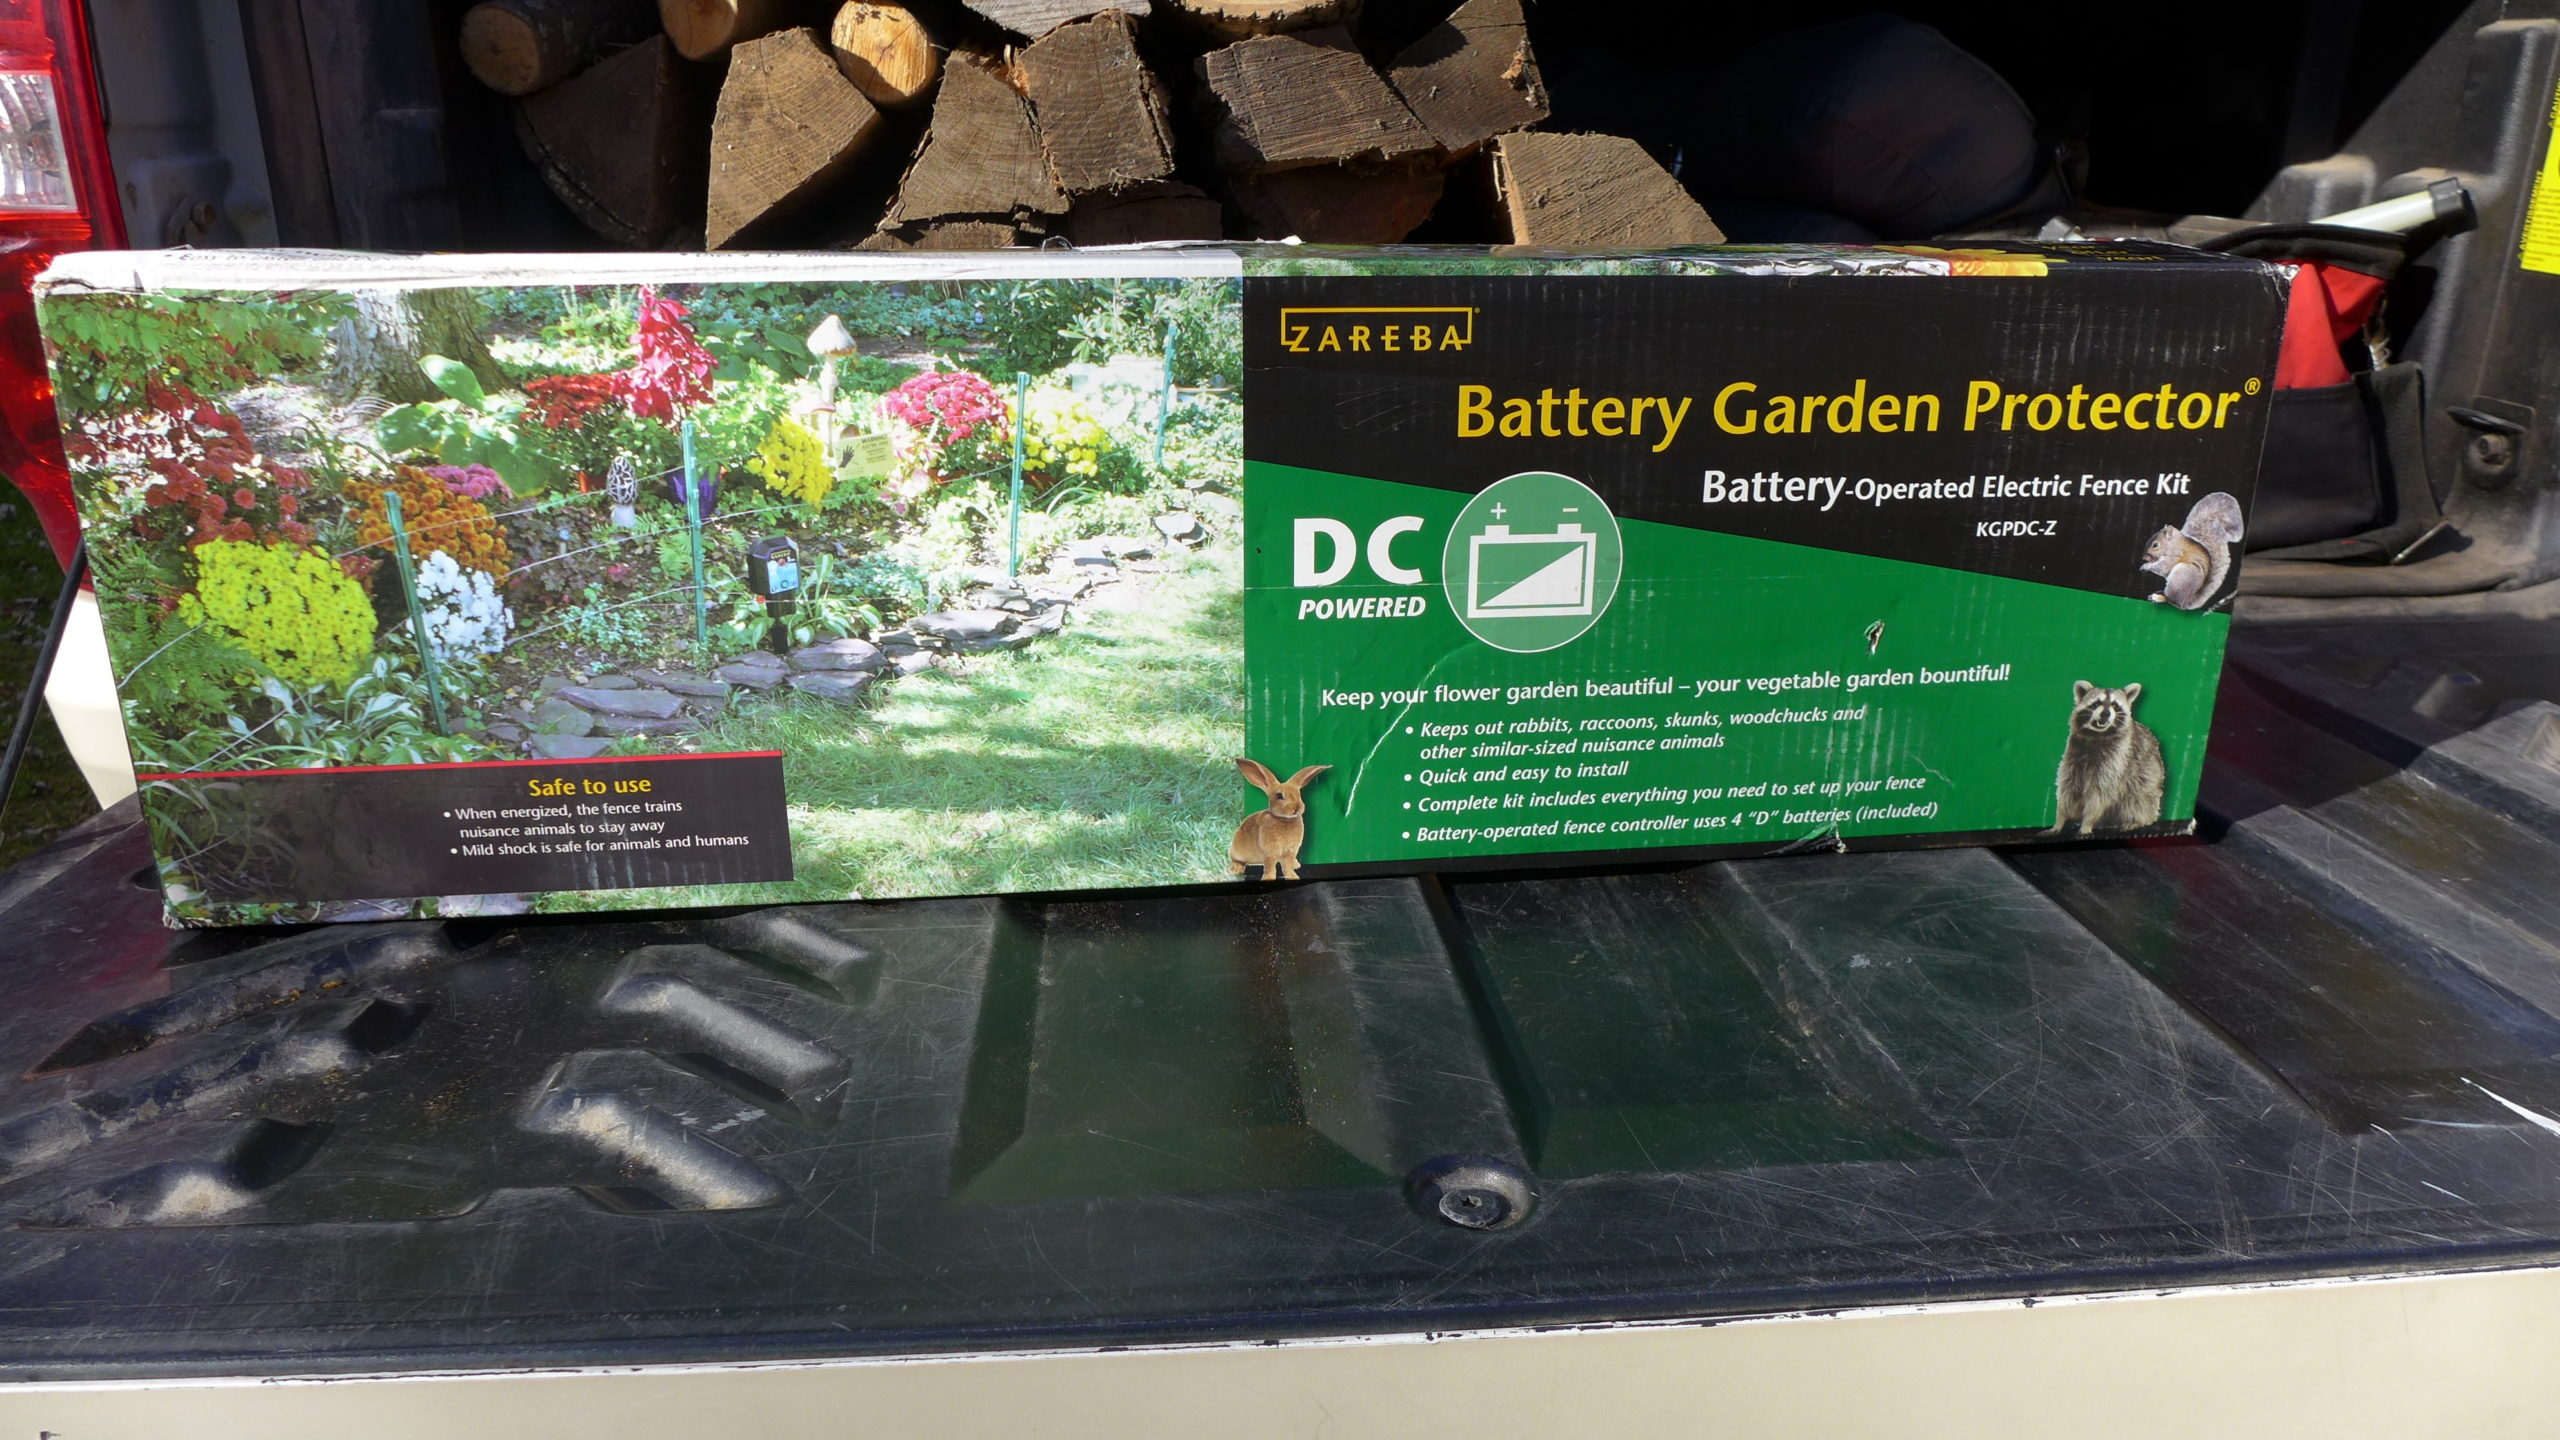 The Zebra Battery Garden Protector is about $120 for a starter electric fence that can protect most modest-size home veggie gardens.